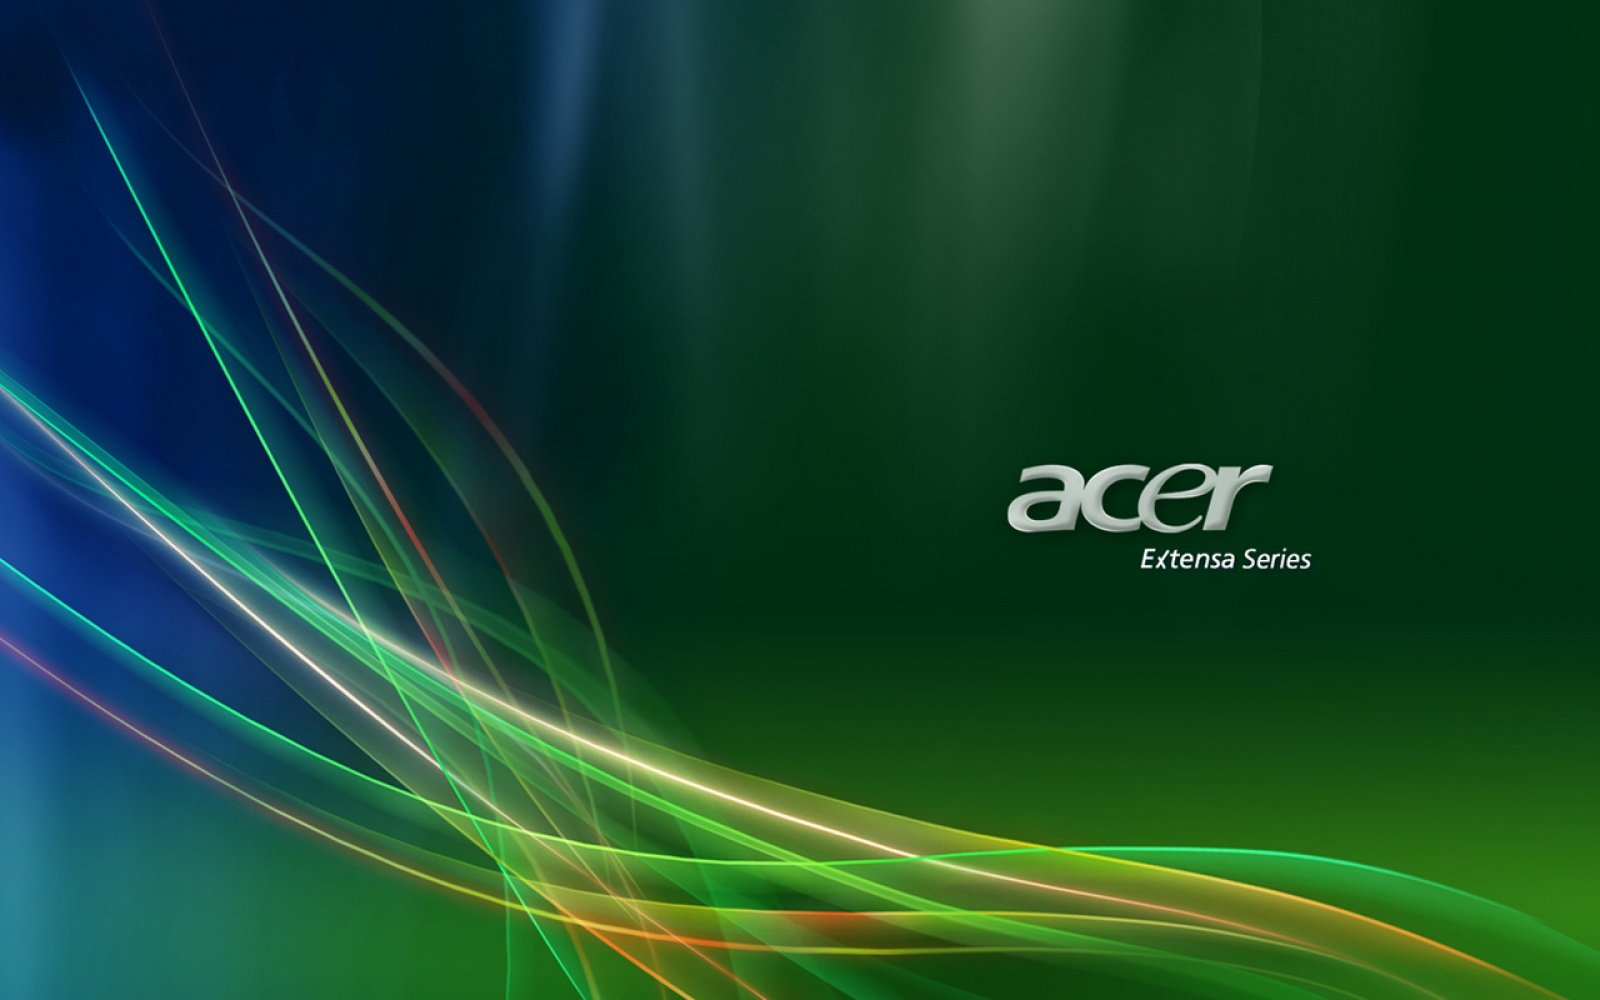 Top 10 Stunning Acer Desktop Wallpaper 1600x1000